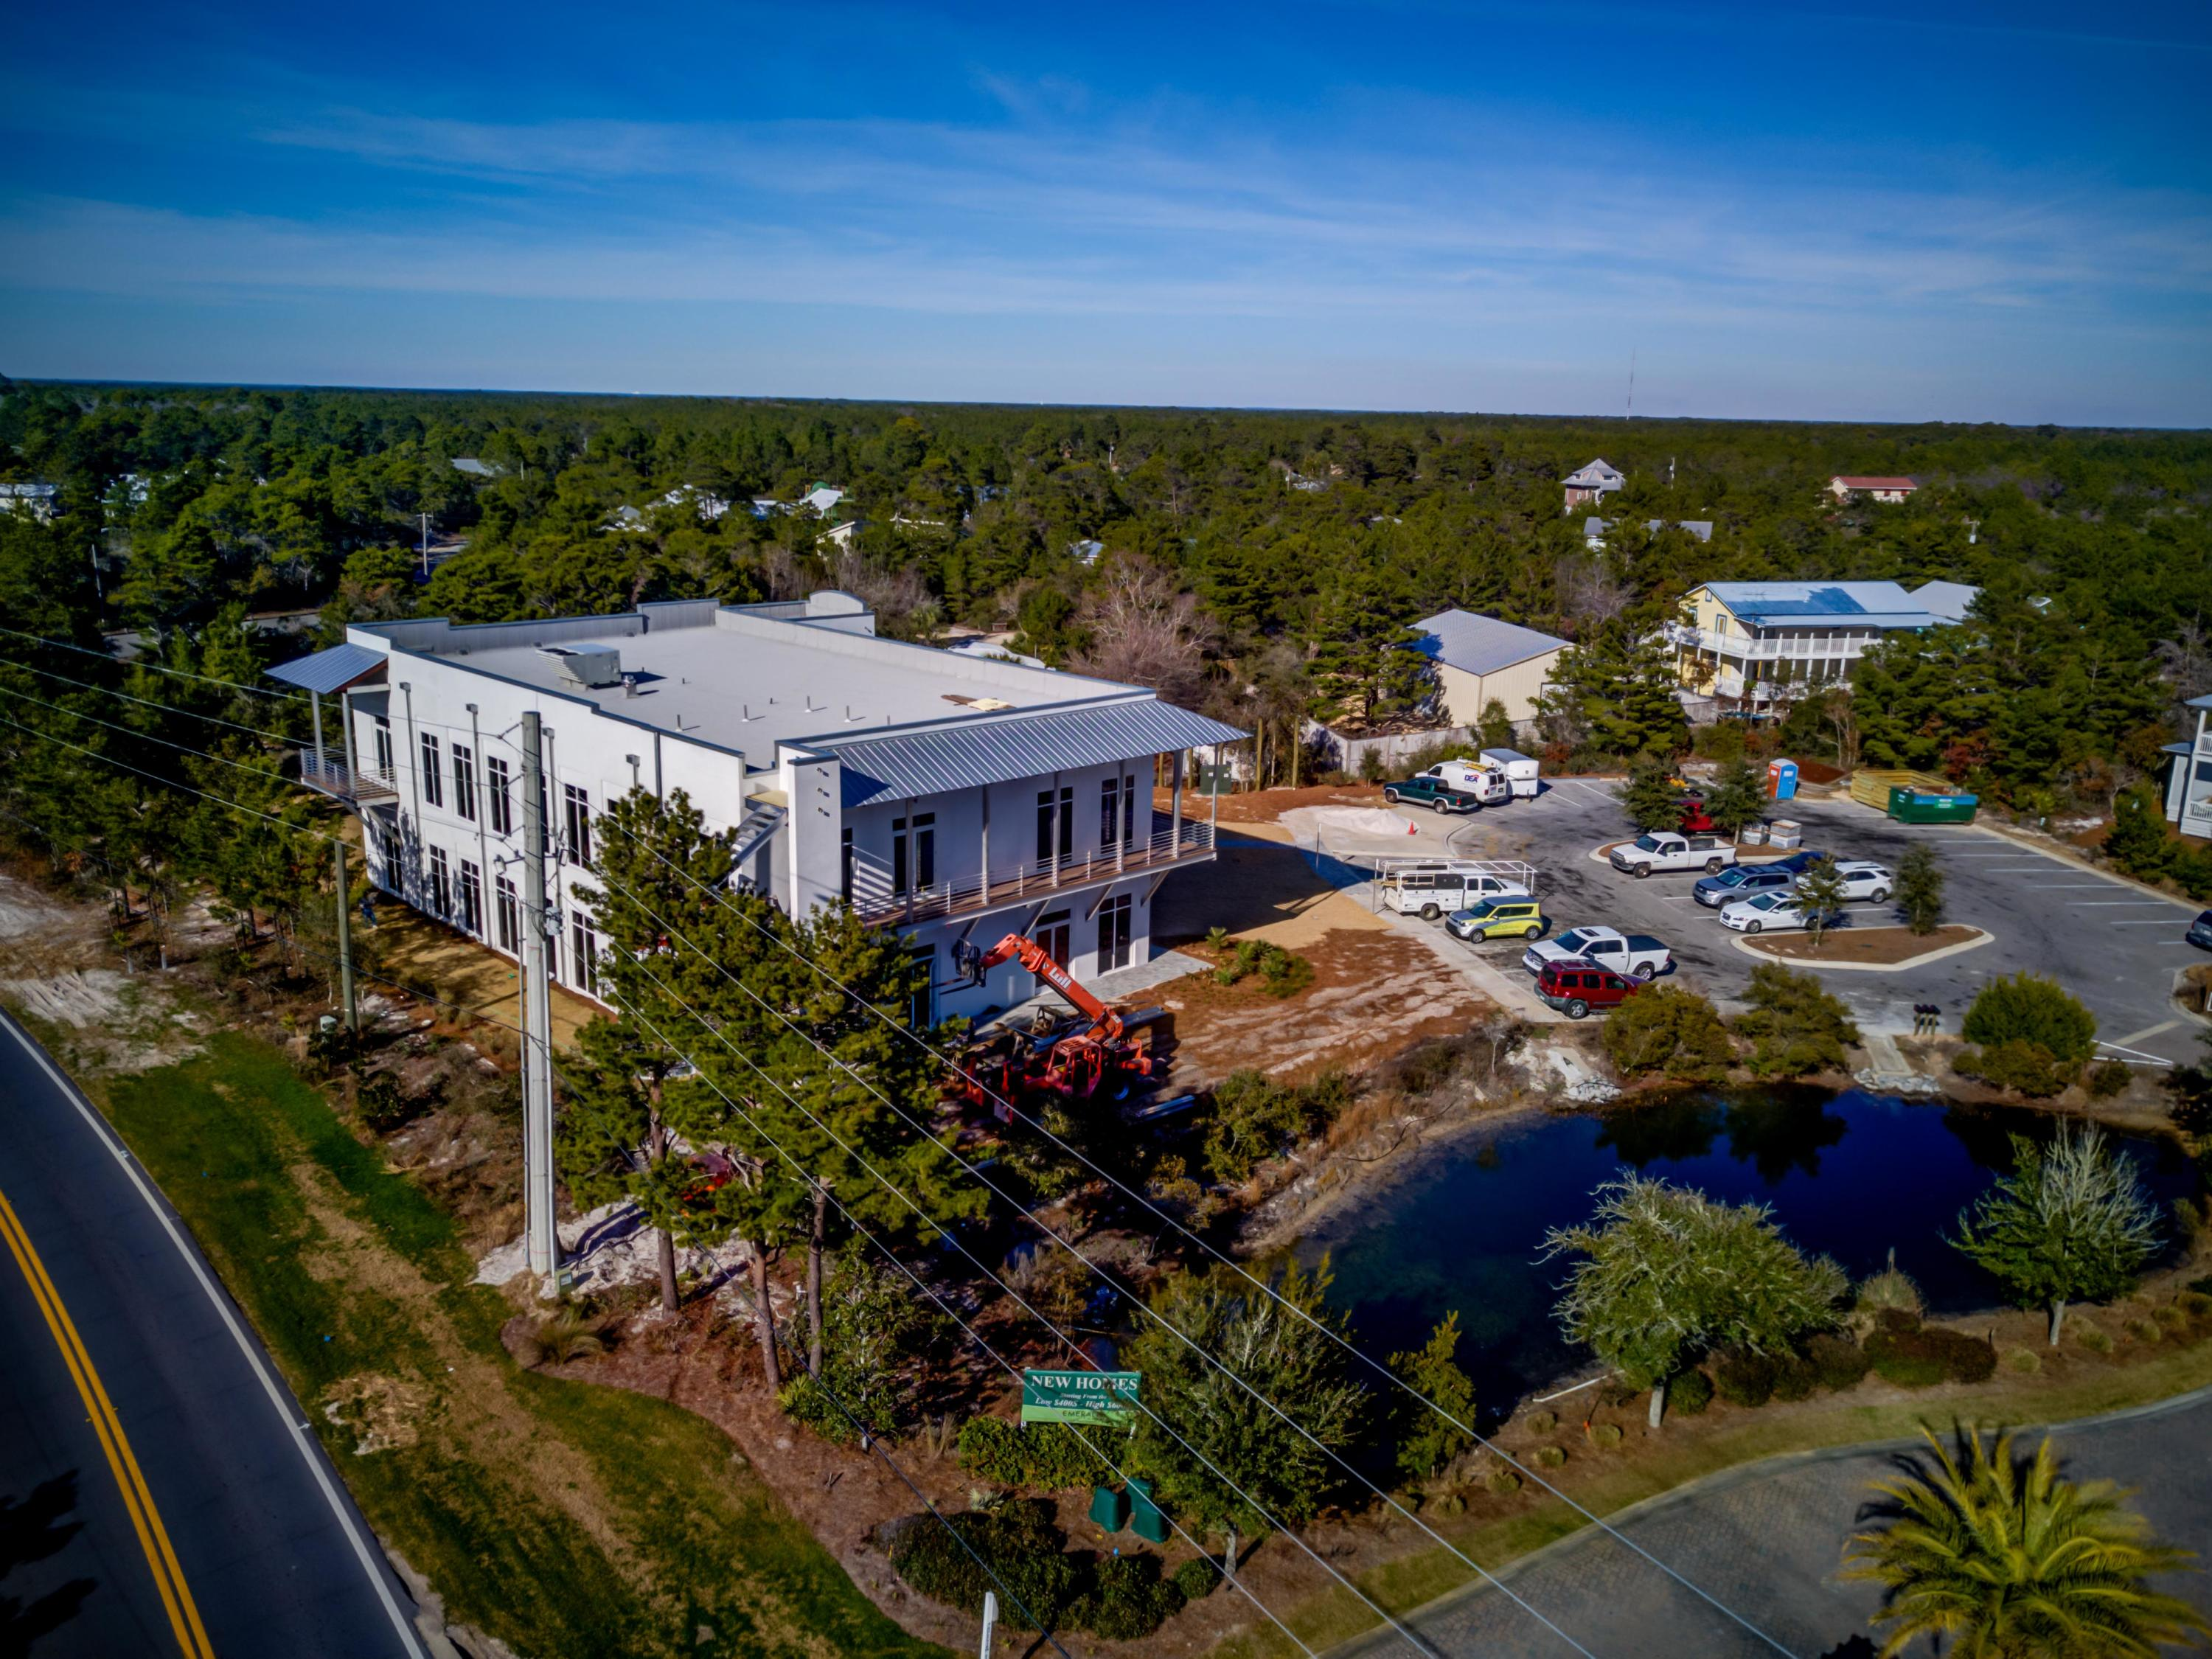 2930 County Hwy 30A,Santa Rosa Beach,Florida 32459,Professional/office,County Hwy 30A,20131126143817002353000000